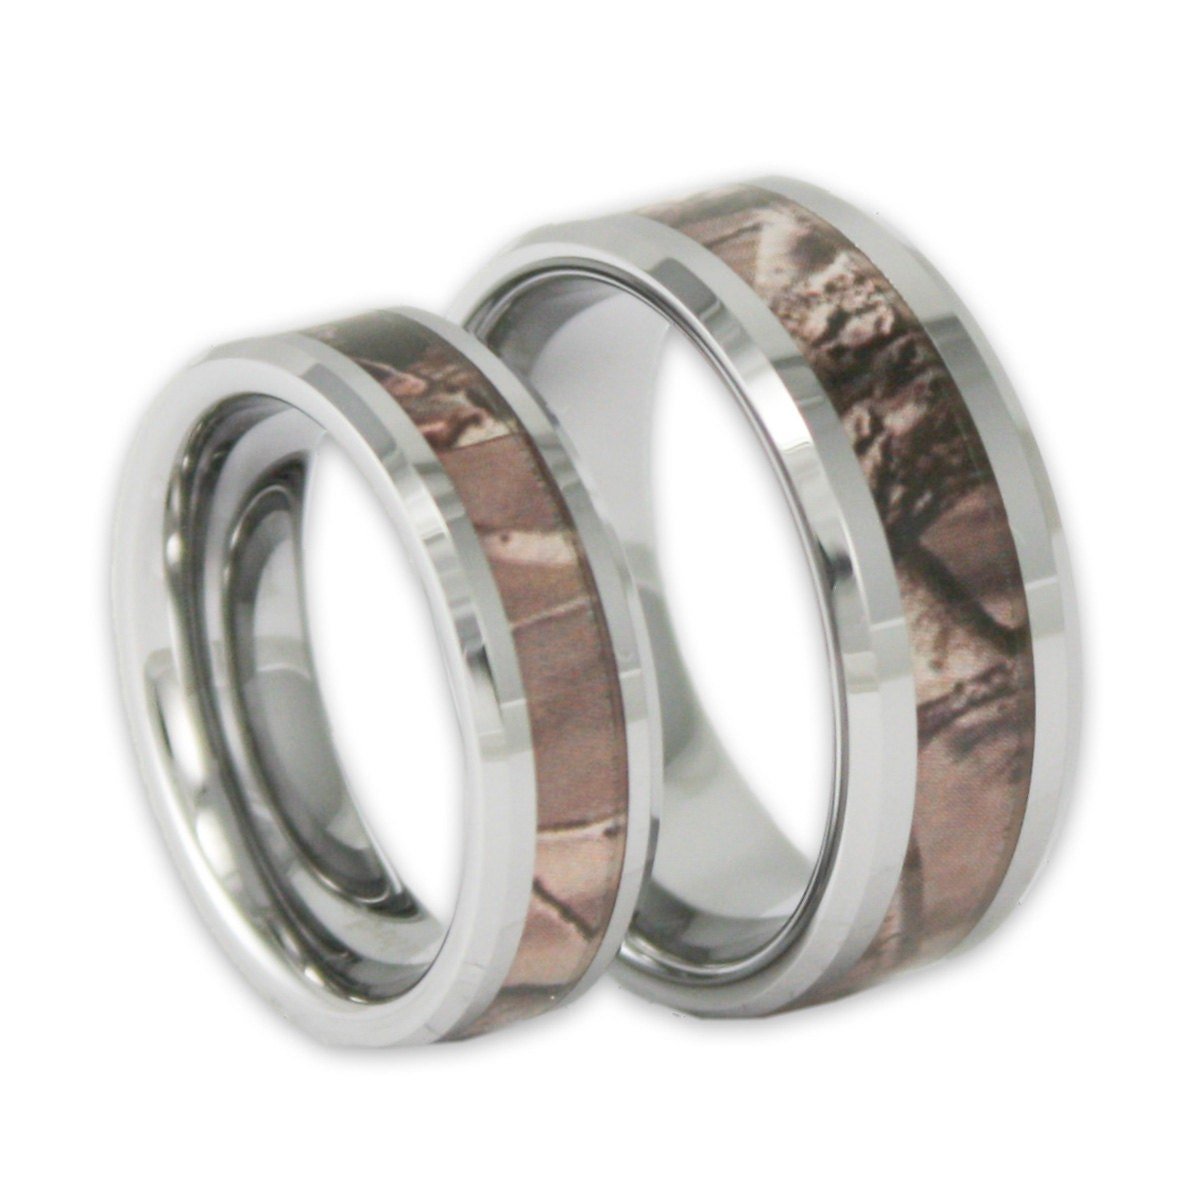 zoom - Camo Wedding Rings Sets